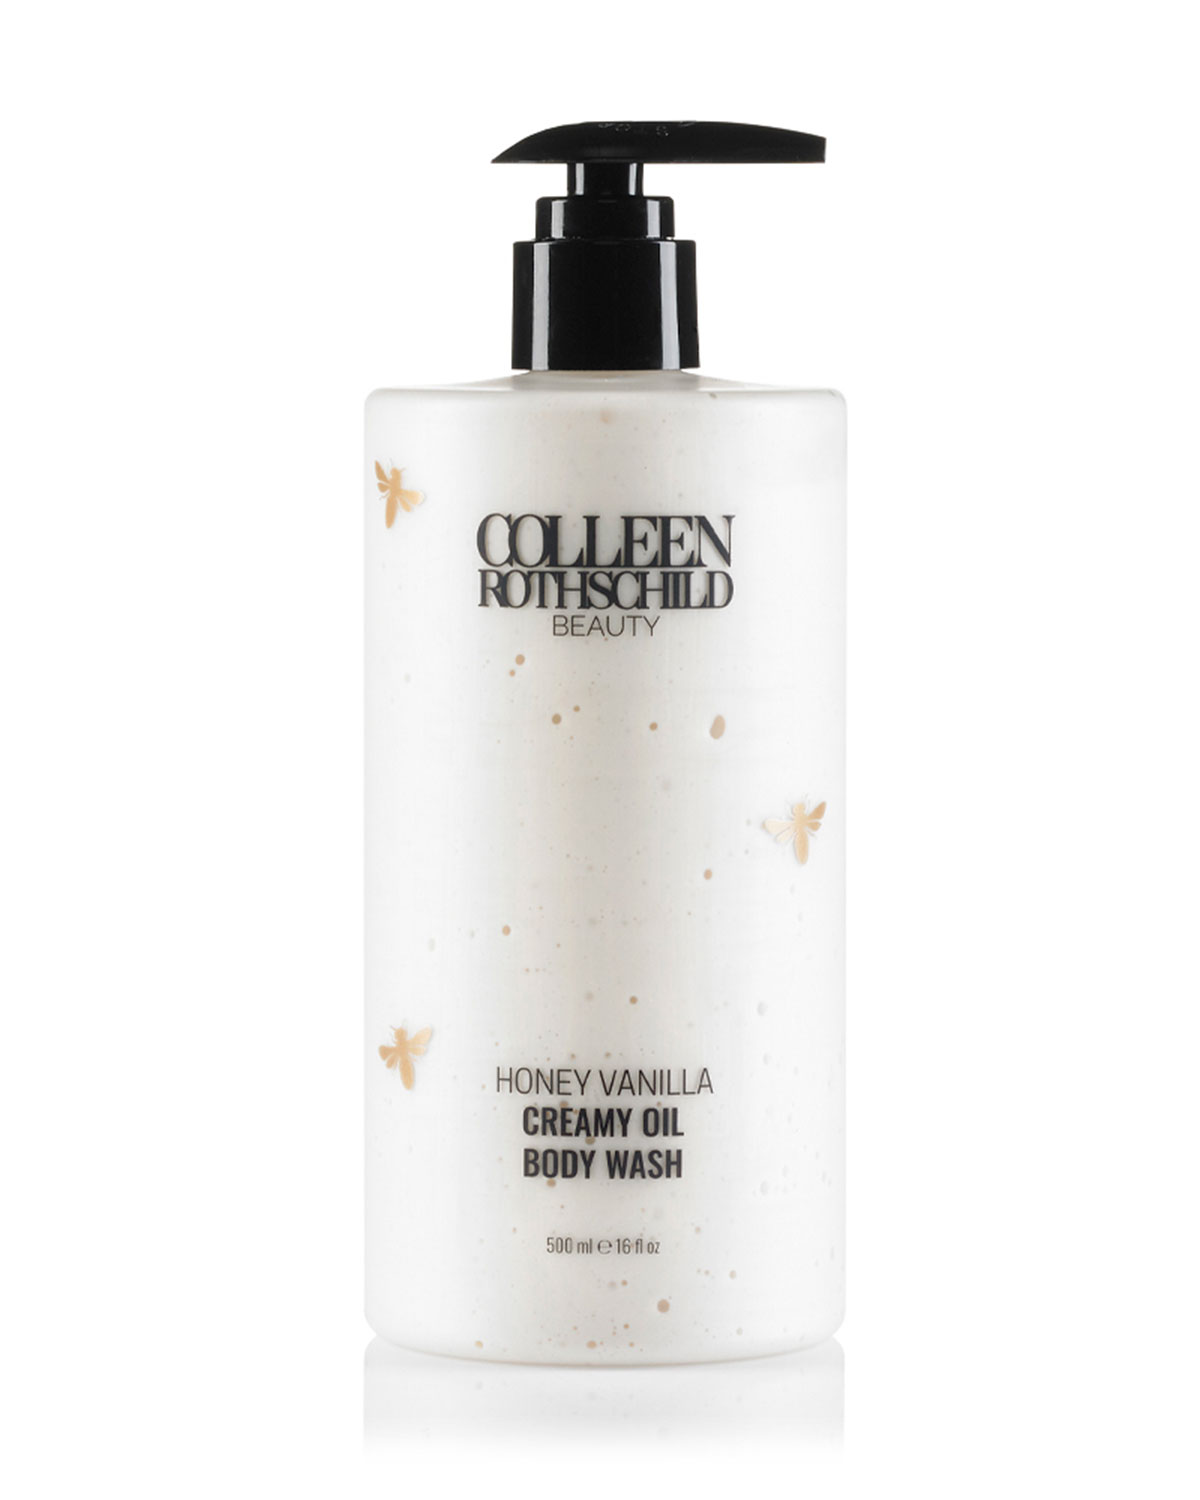 Colleen Rothschild Beauty Creamy Oil Body Wash, Honey Vanilla